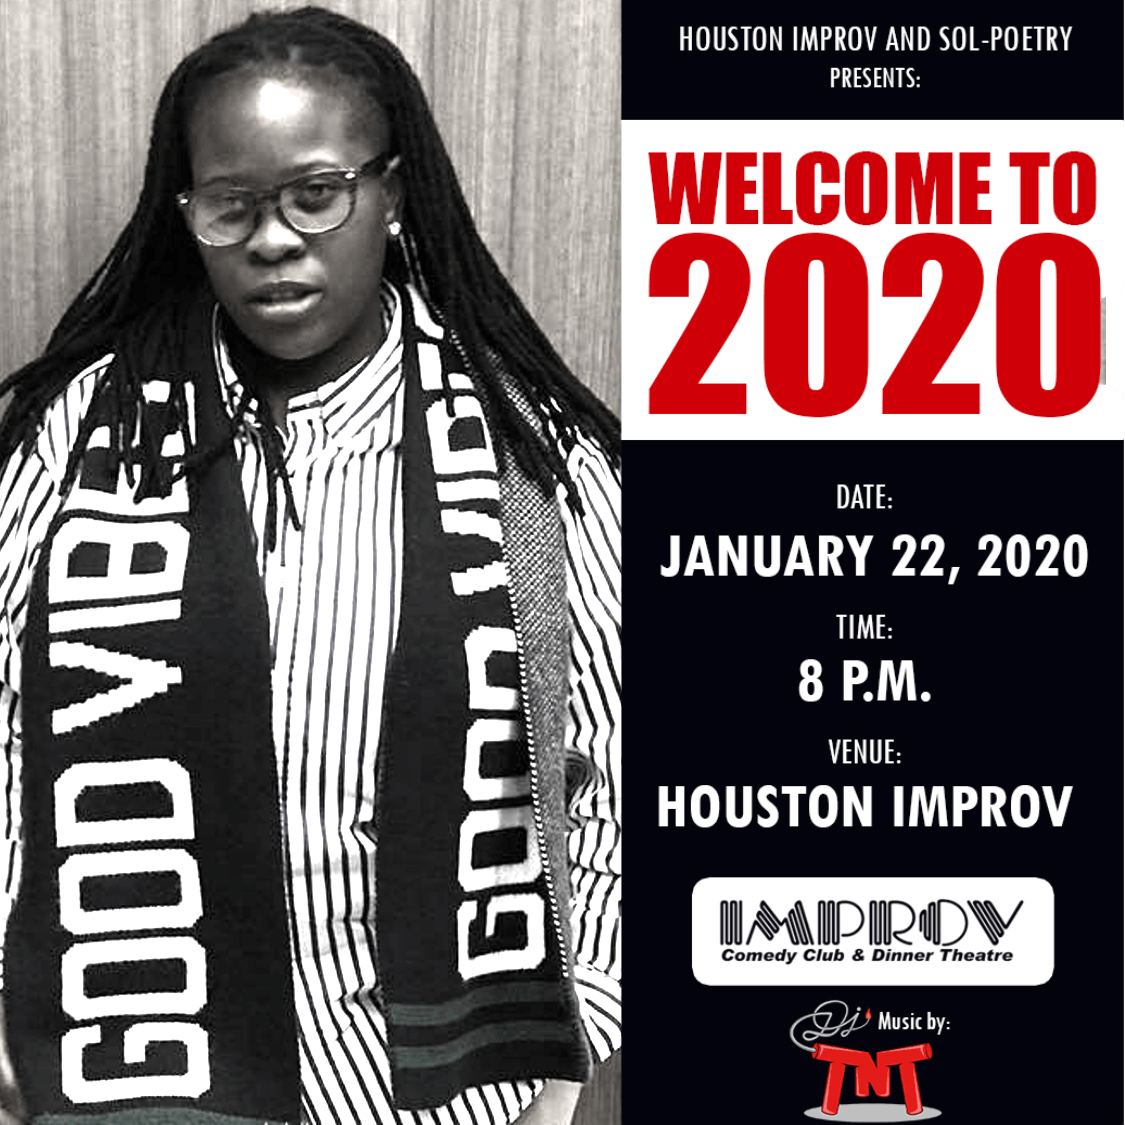 Sol-Poetry Welcome to 2020 Poetry Event (Ebony Rose)